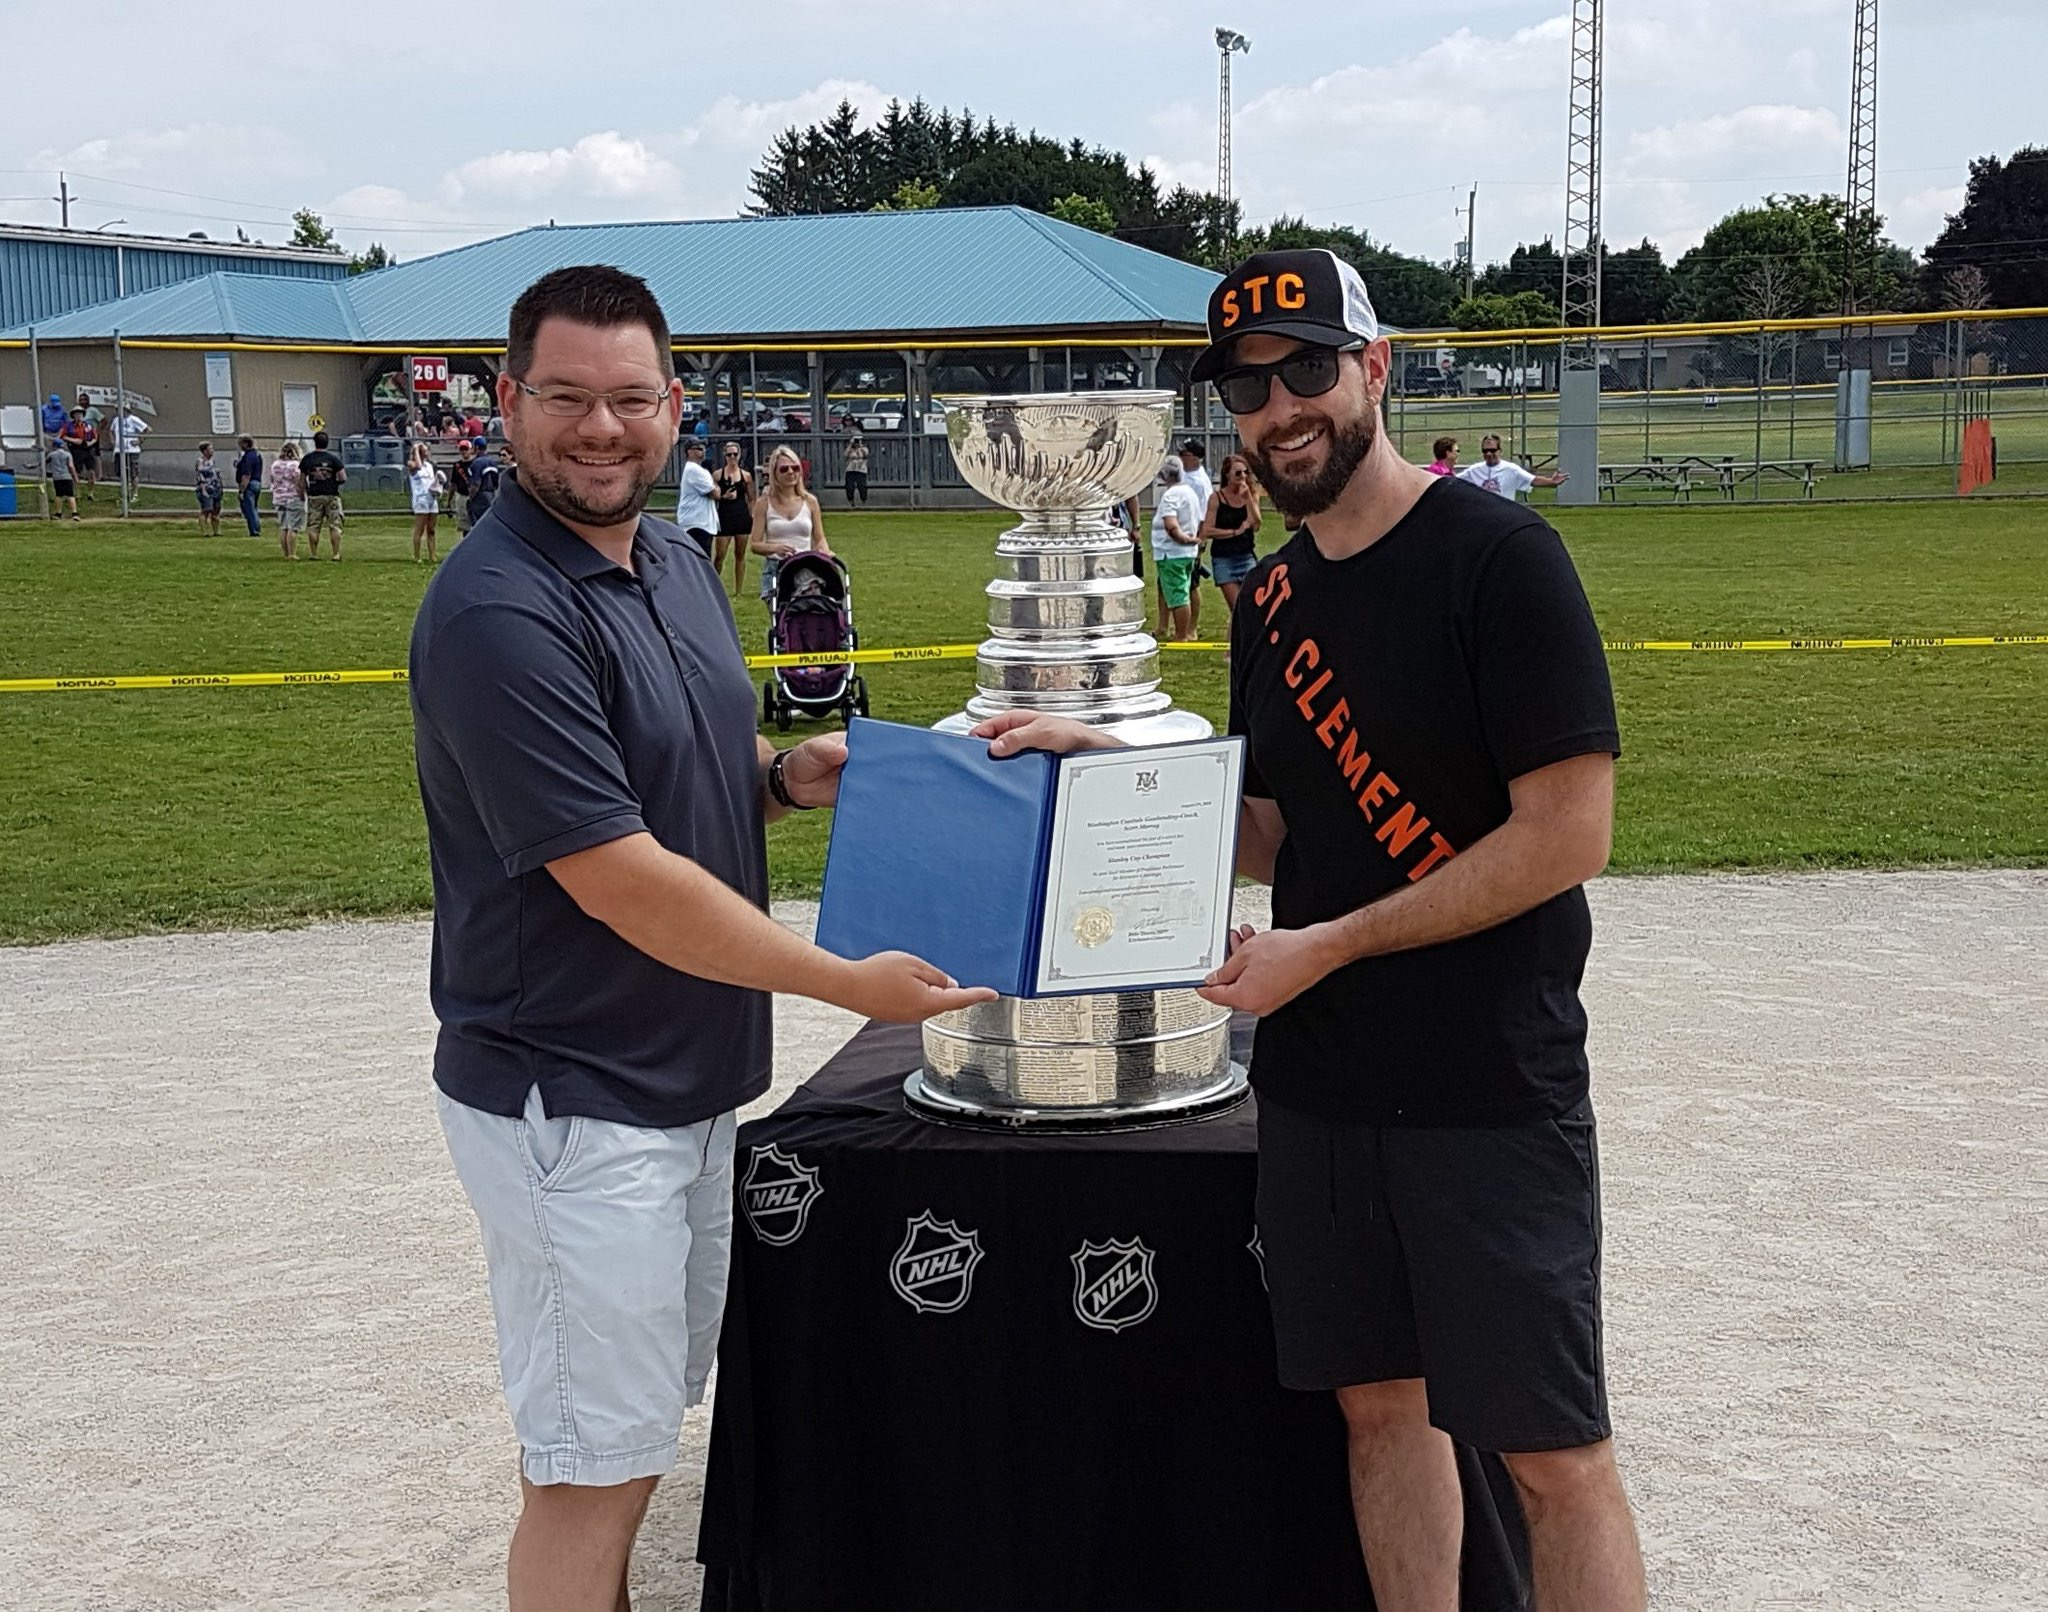 Capitals  Goalie Coach Scott Murray Has His Day With The Stanley Cup ... d53cef1b6